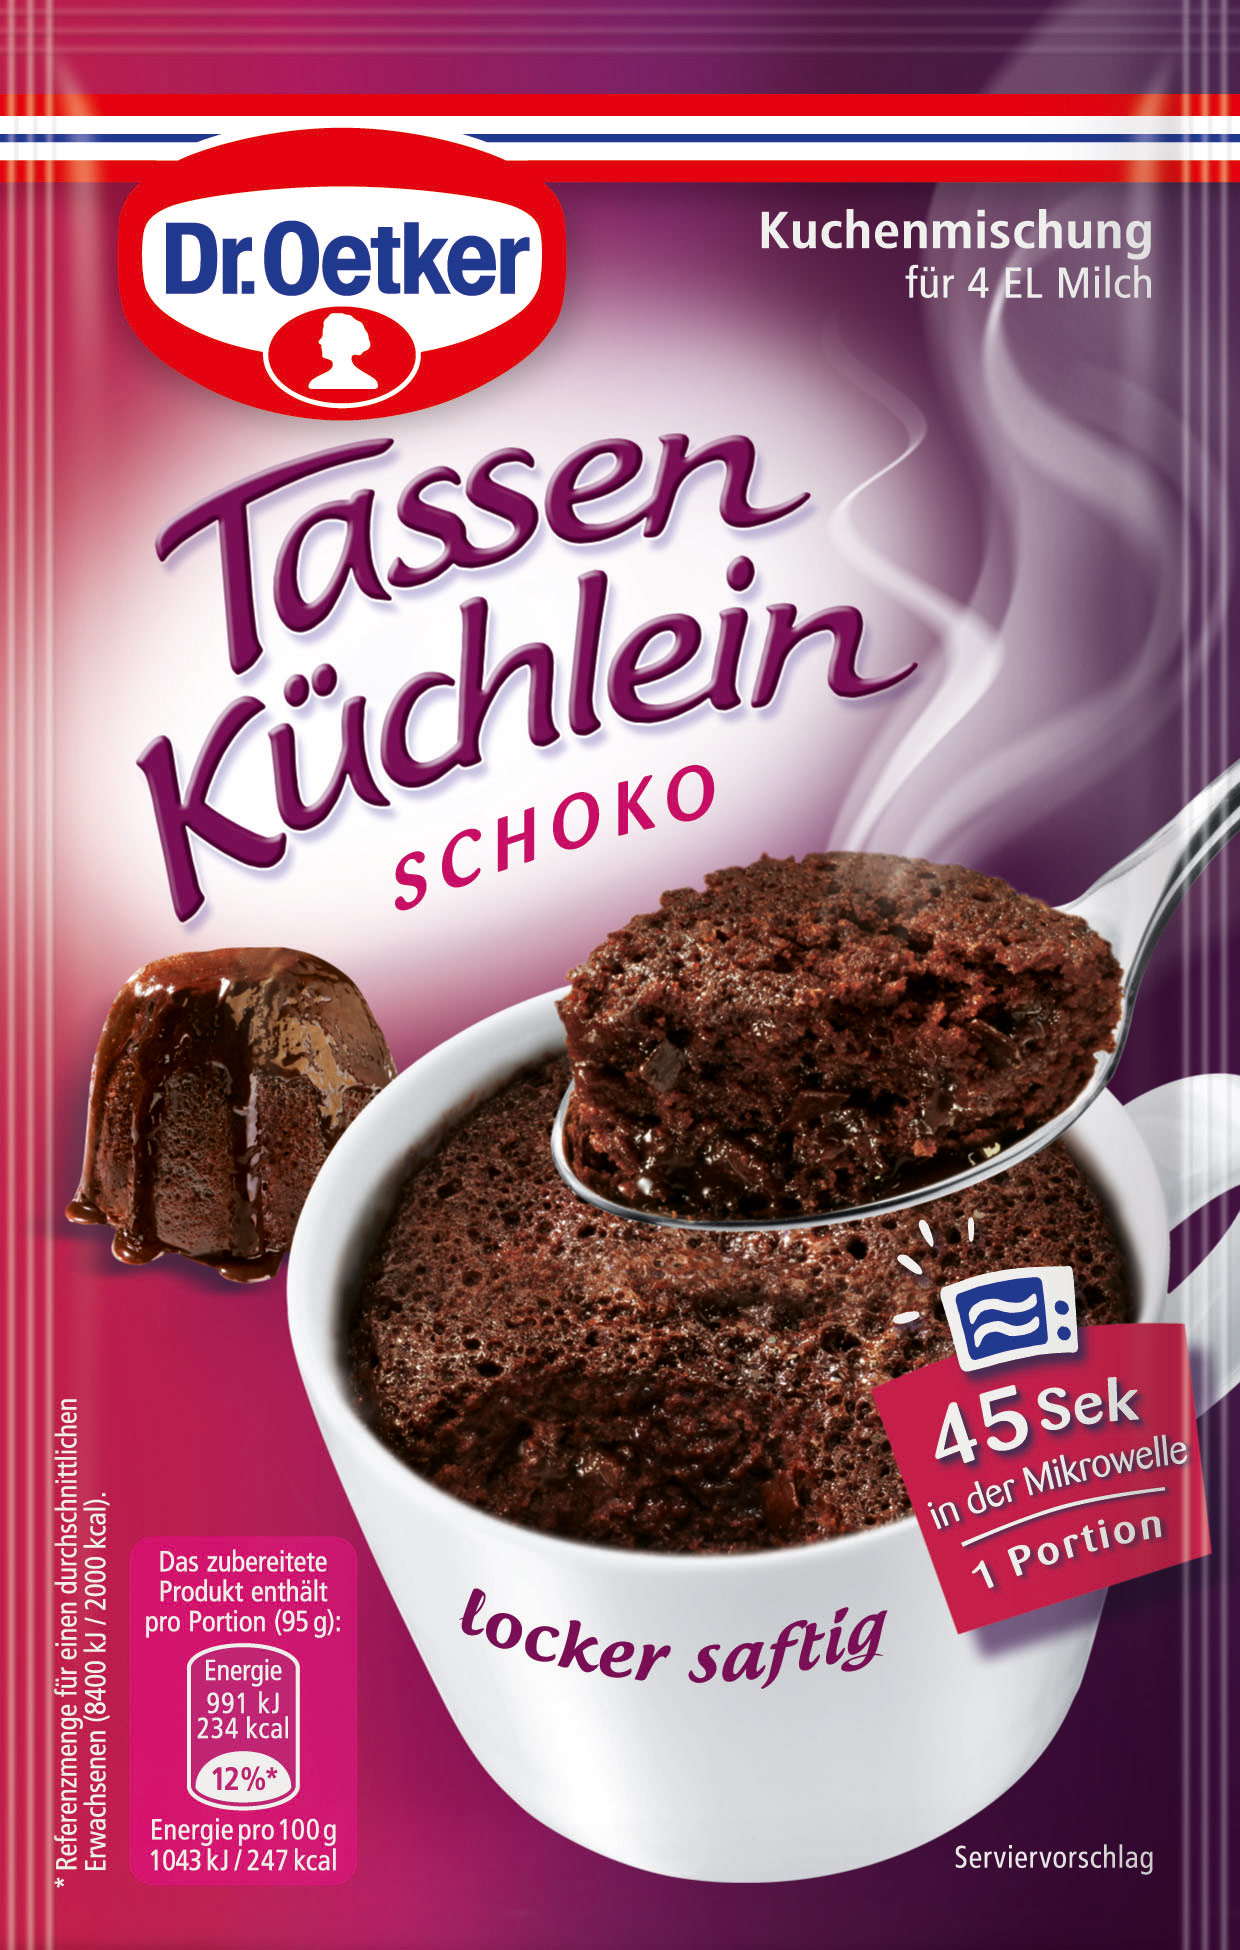 dr oetker tassen k chlein schoko kuchenmischung 55g online kaufen bei lieferello. Black Bedroom Furniture Sets. Home Design Ideas